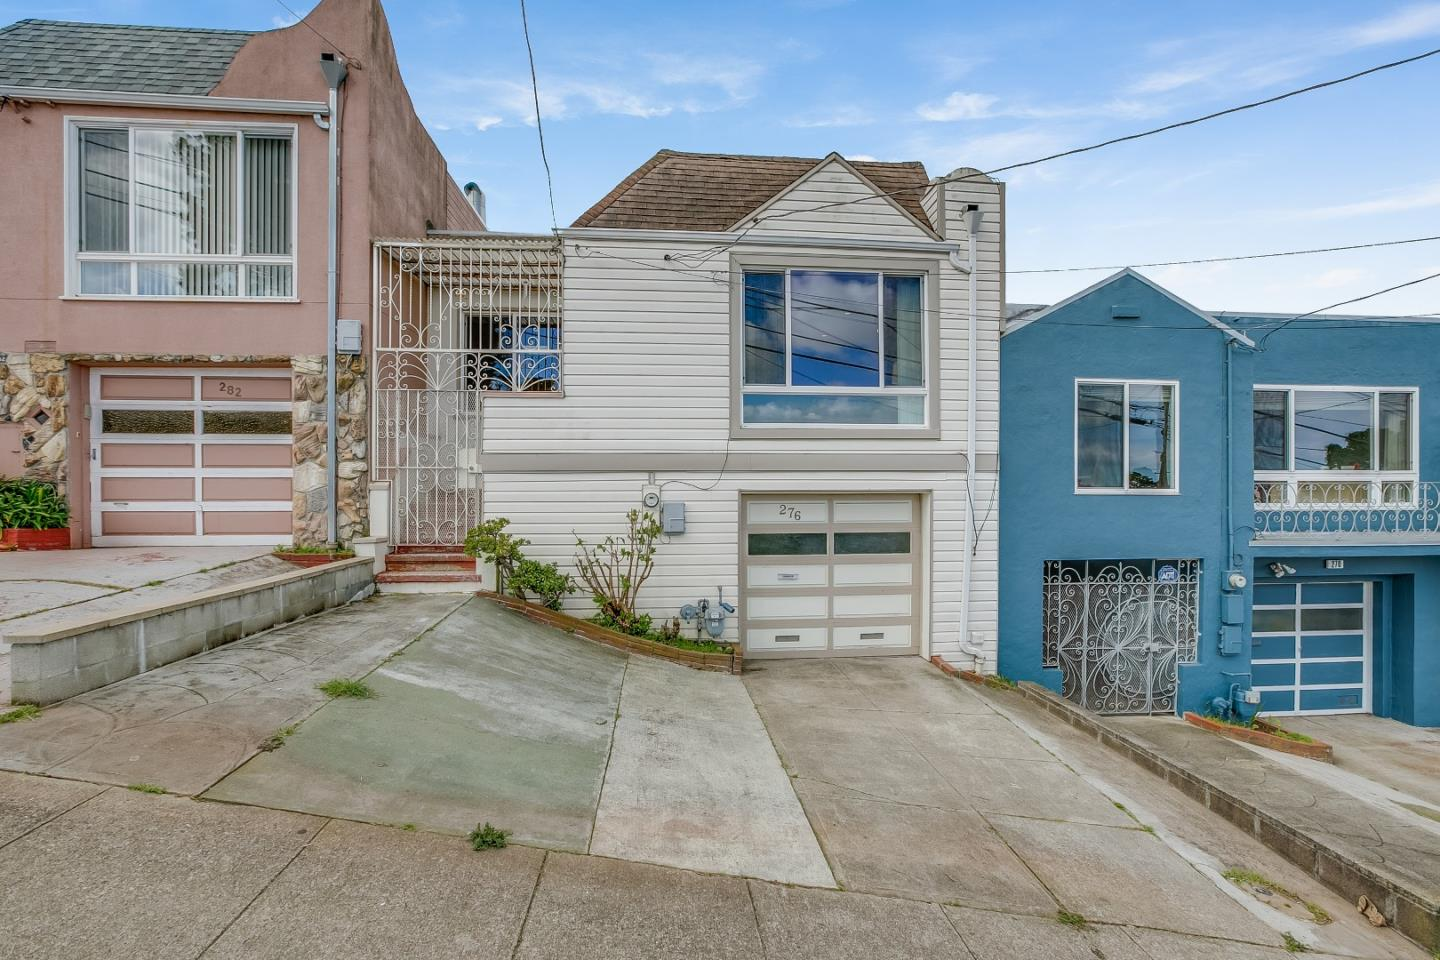 thumbnail image for 276 Whittier Street, Daly City CA, 94014